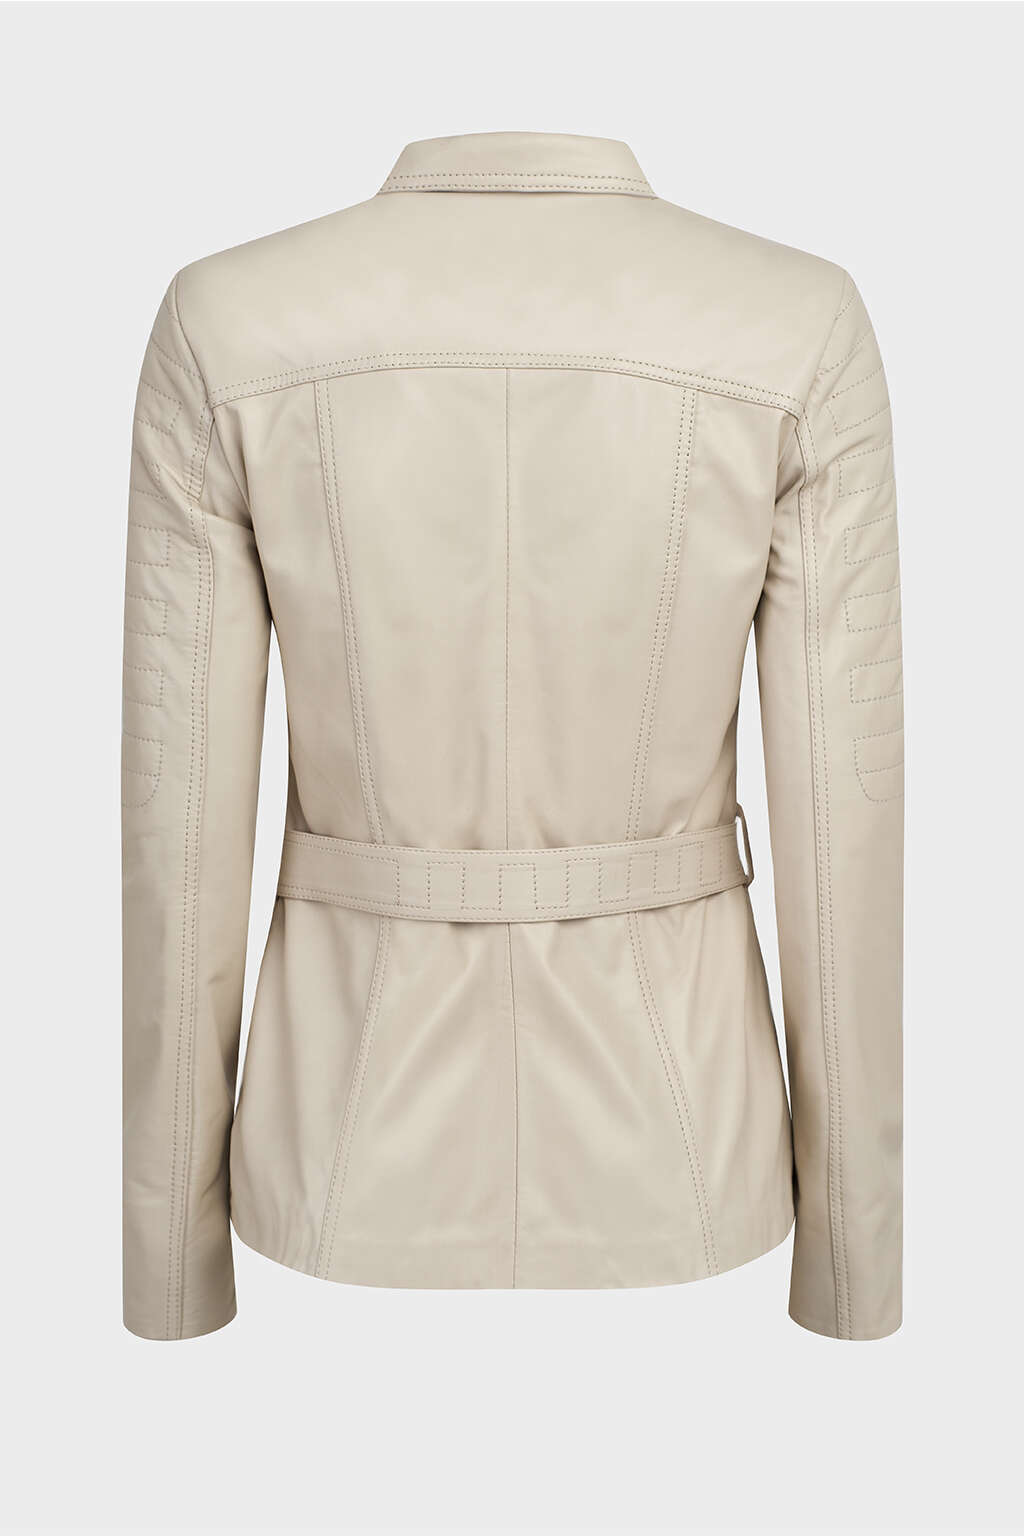 Back of Pearl White Belted Leather Jacket